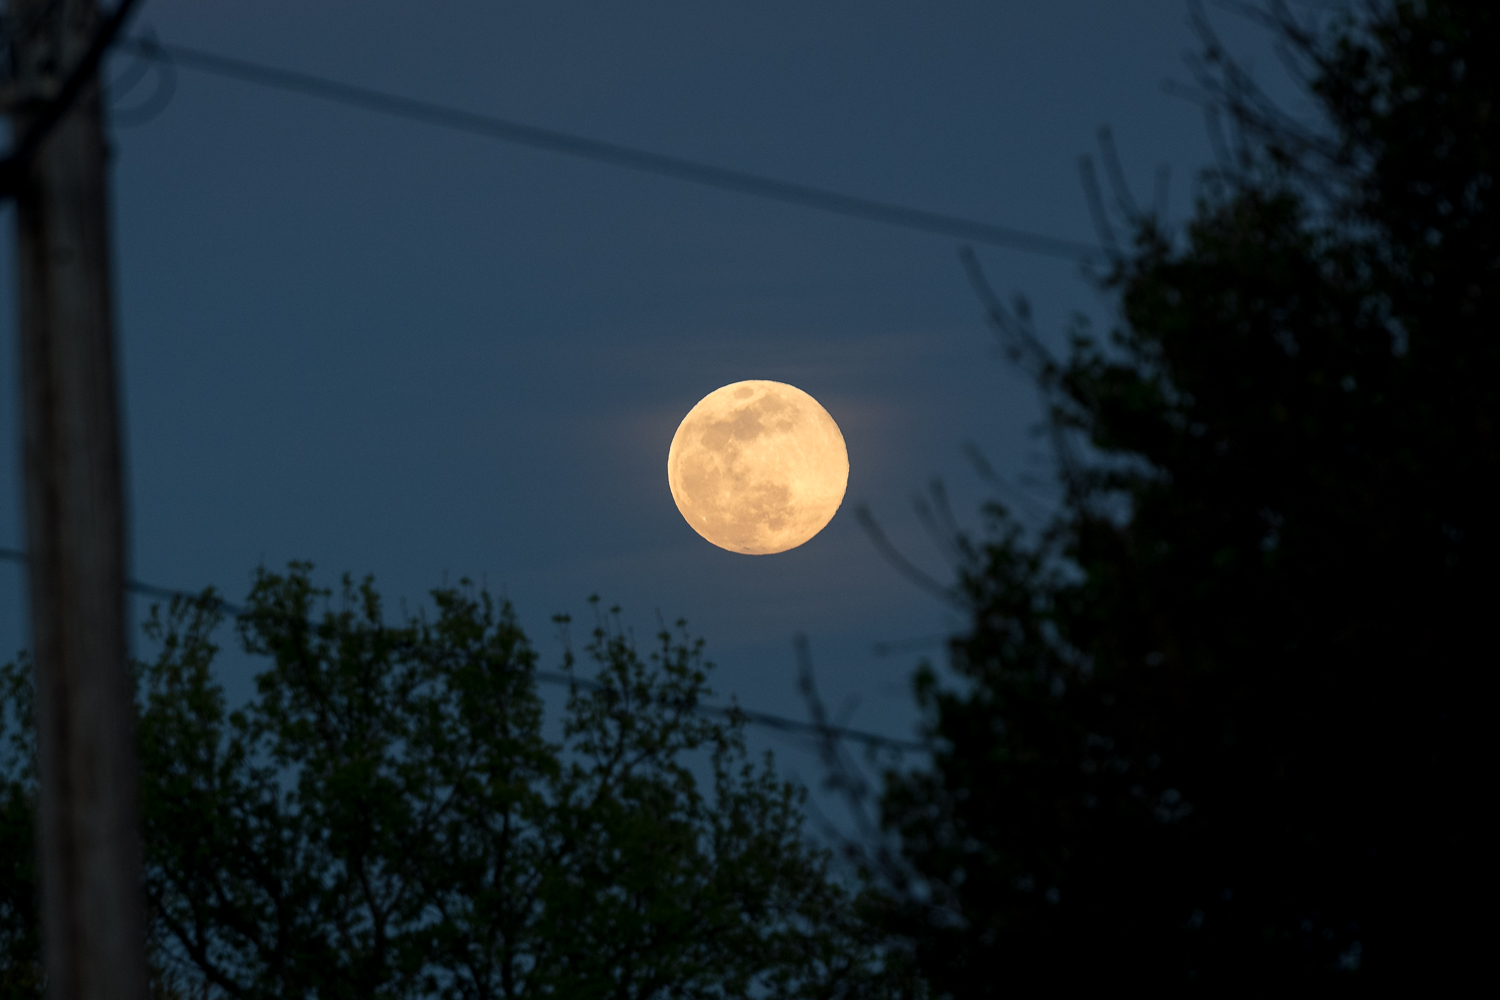 Full Moon with Power Lines in Foreground